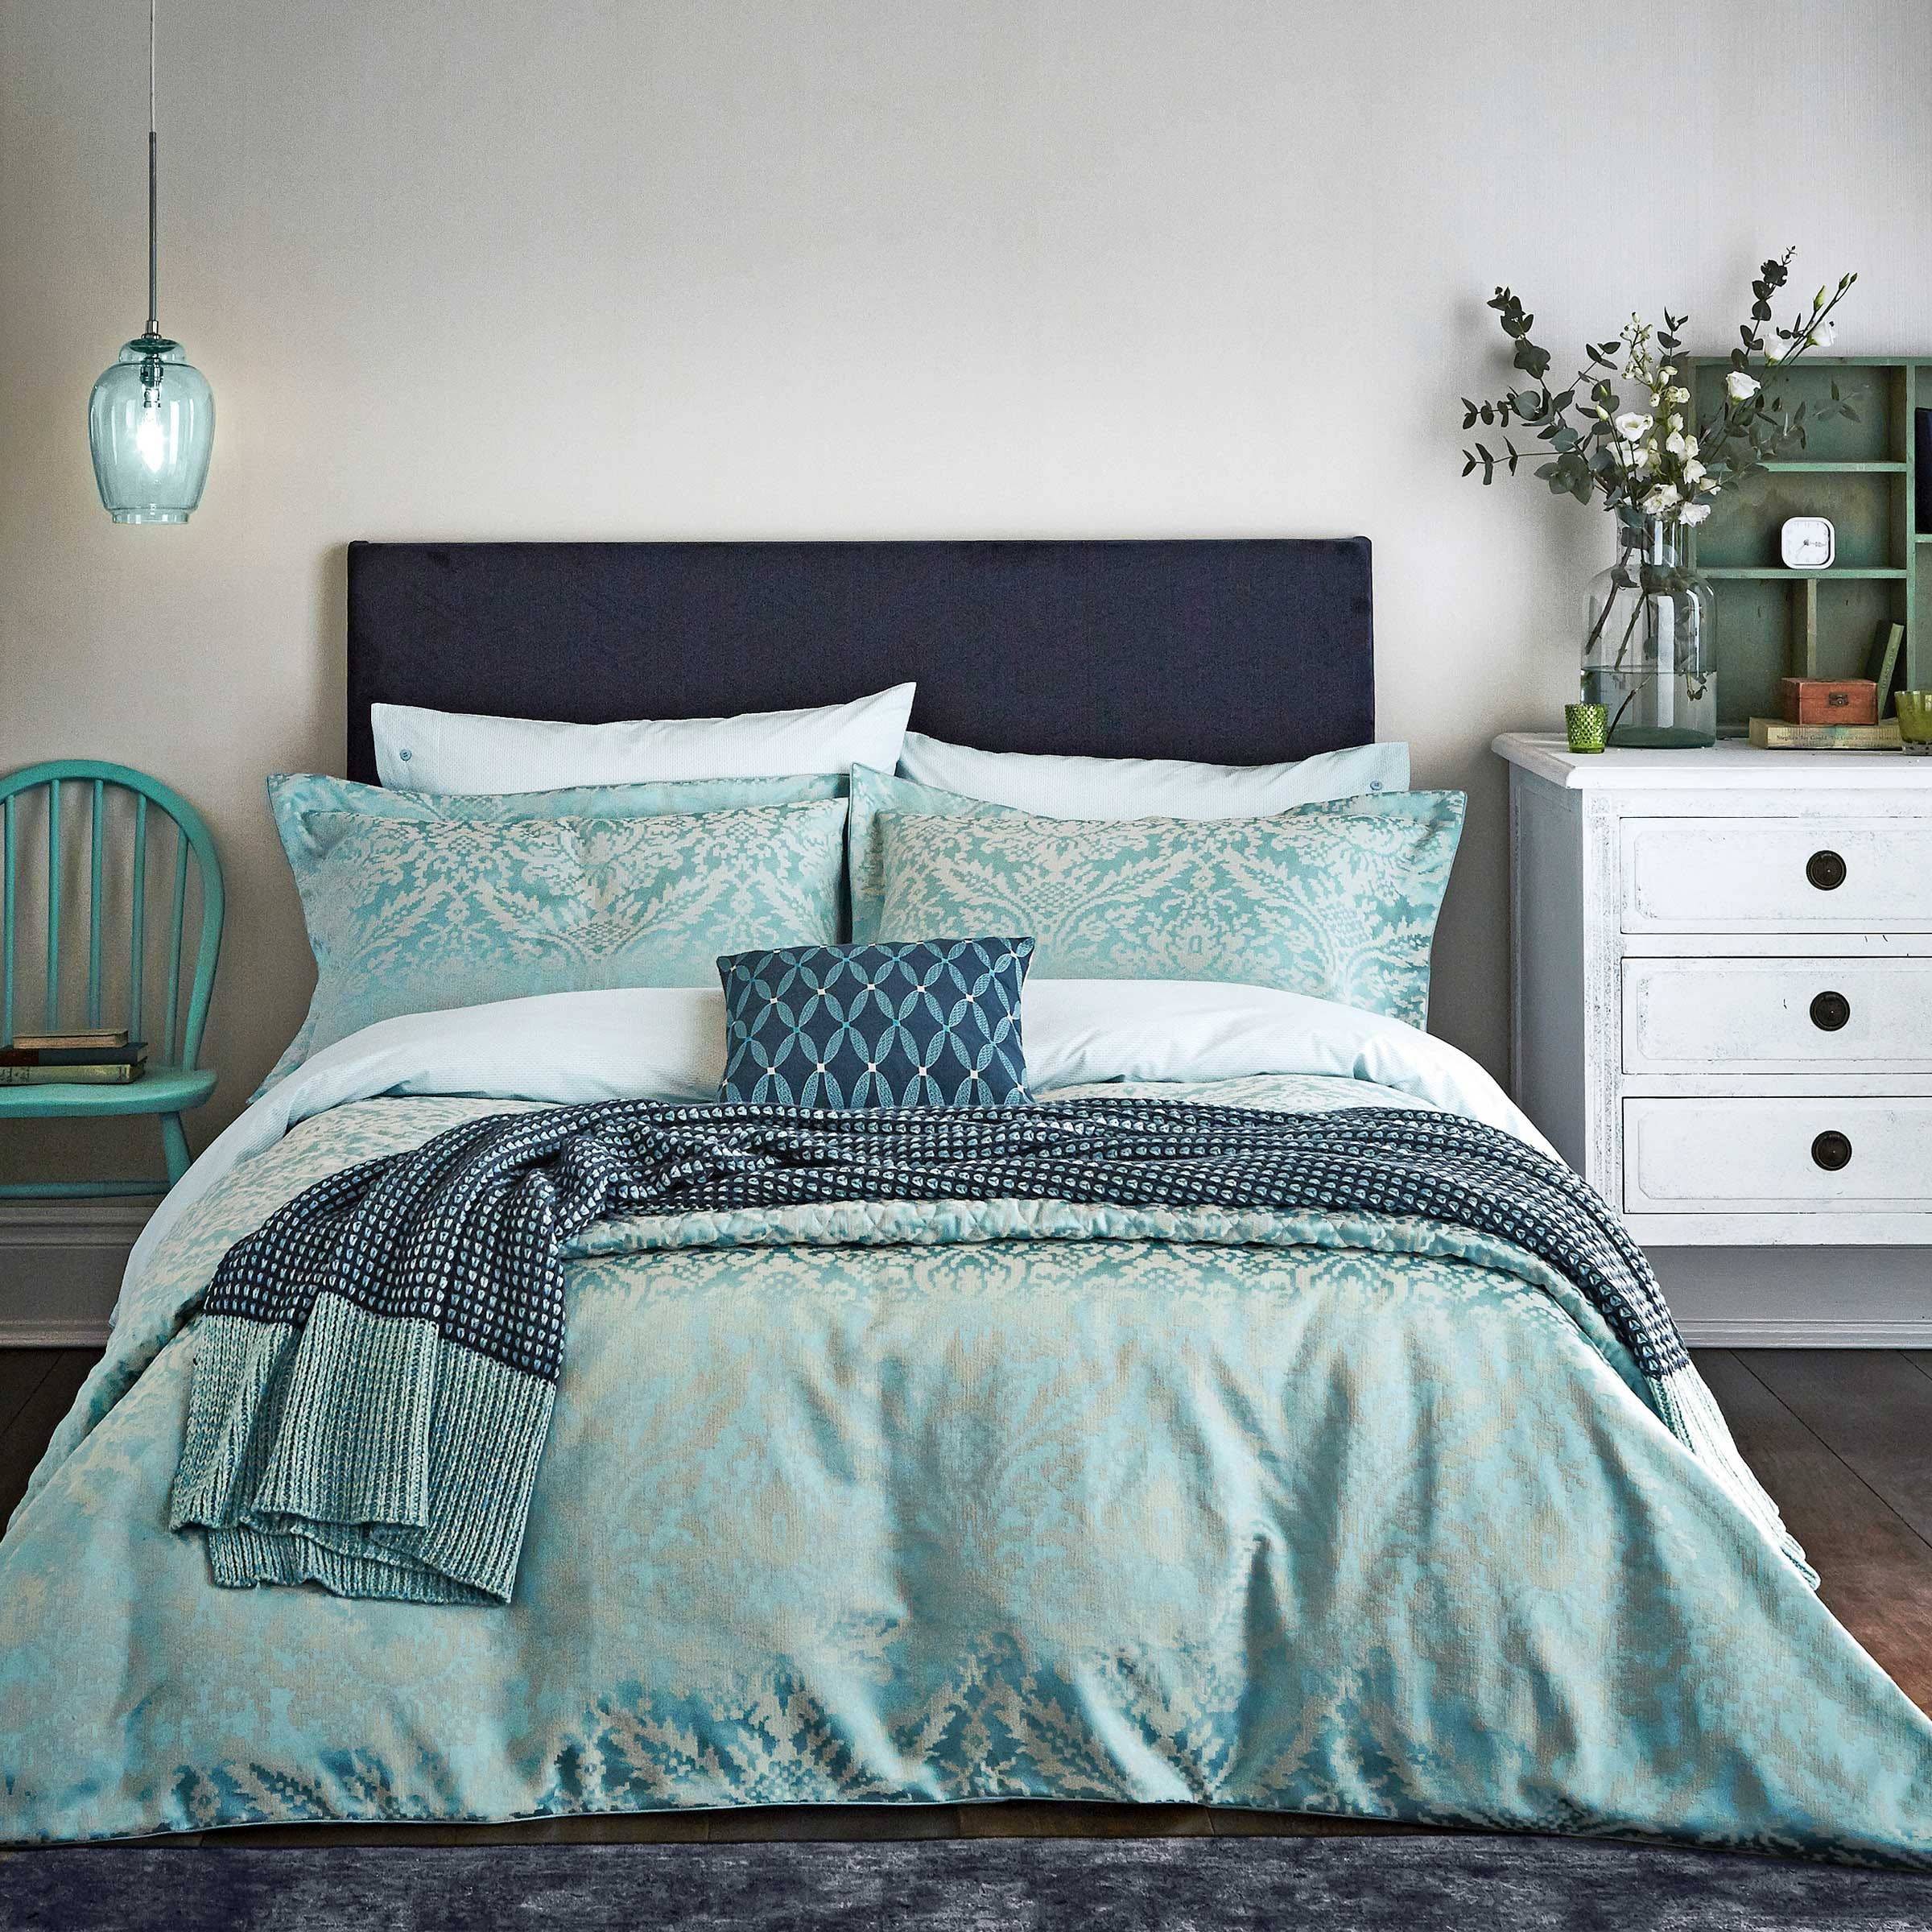 Bedeck 1951 Bedding - Loya Duvet Cover Double - Mint